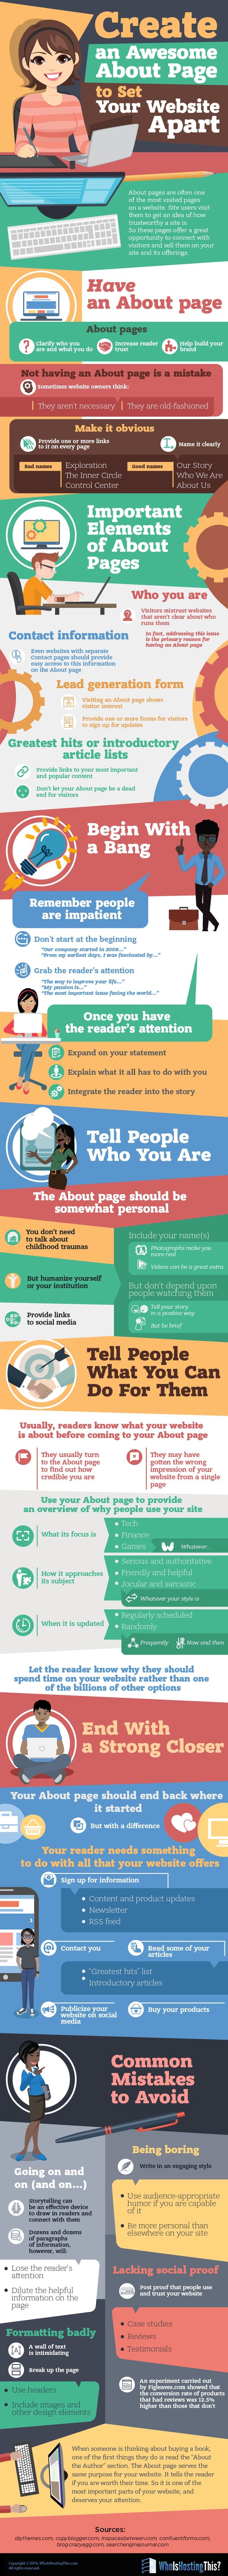 Make Your Website Stand Out! 30+ Dos & Don'ts for Your About Page #Infographic #WebDesign